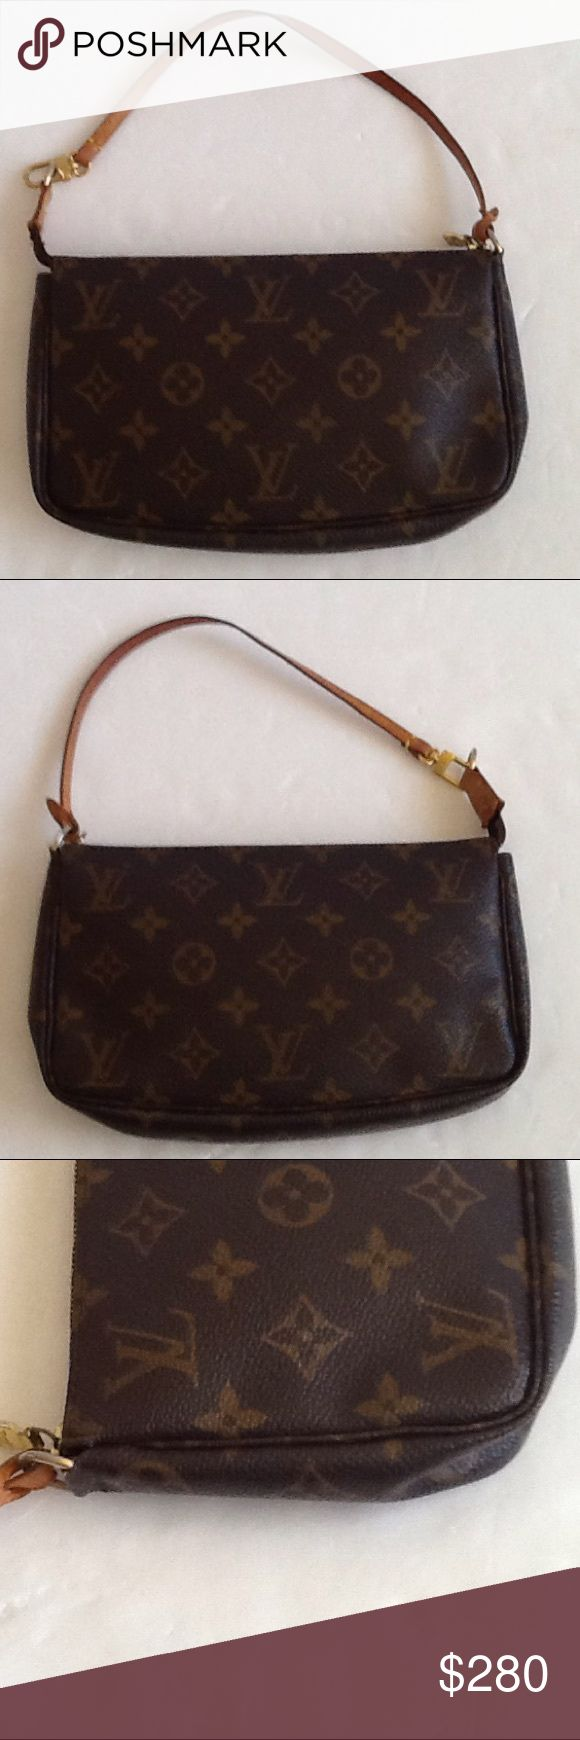 Authentic Louis Vuitton Monogram Pochette Bag. The handle showed signs of used. The date code is VI 0022. The canvas and inside linen are good. The dimension is 8, 5 and 1. Over all the bag us in a good condition. Louis Vuitton Bags Clutches & Wristlets